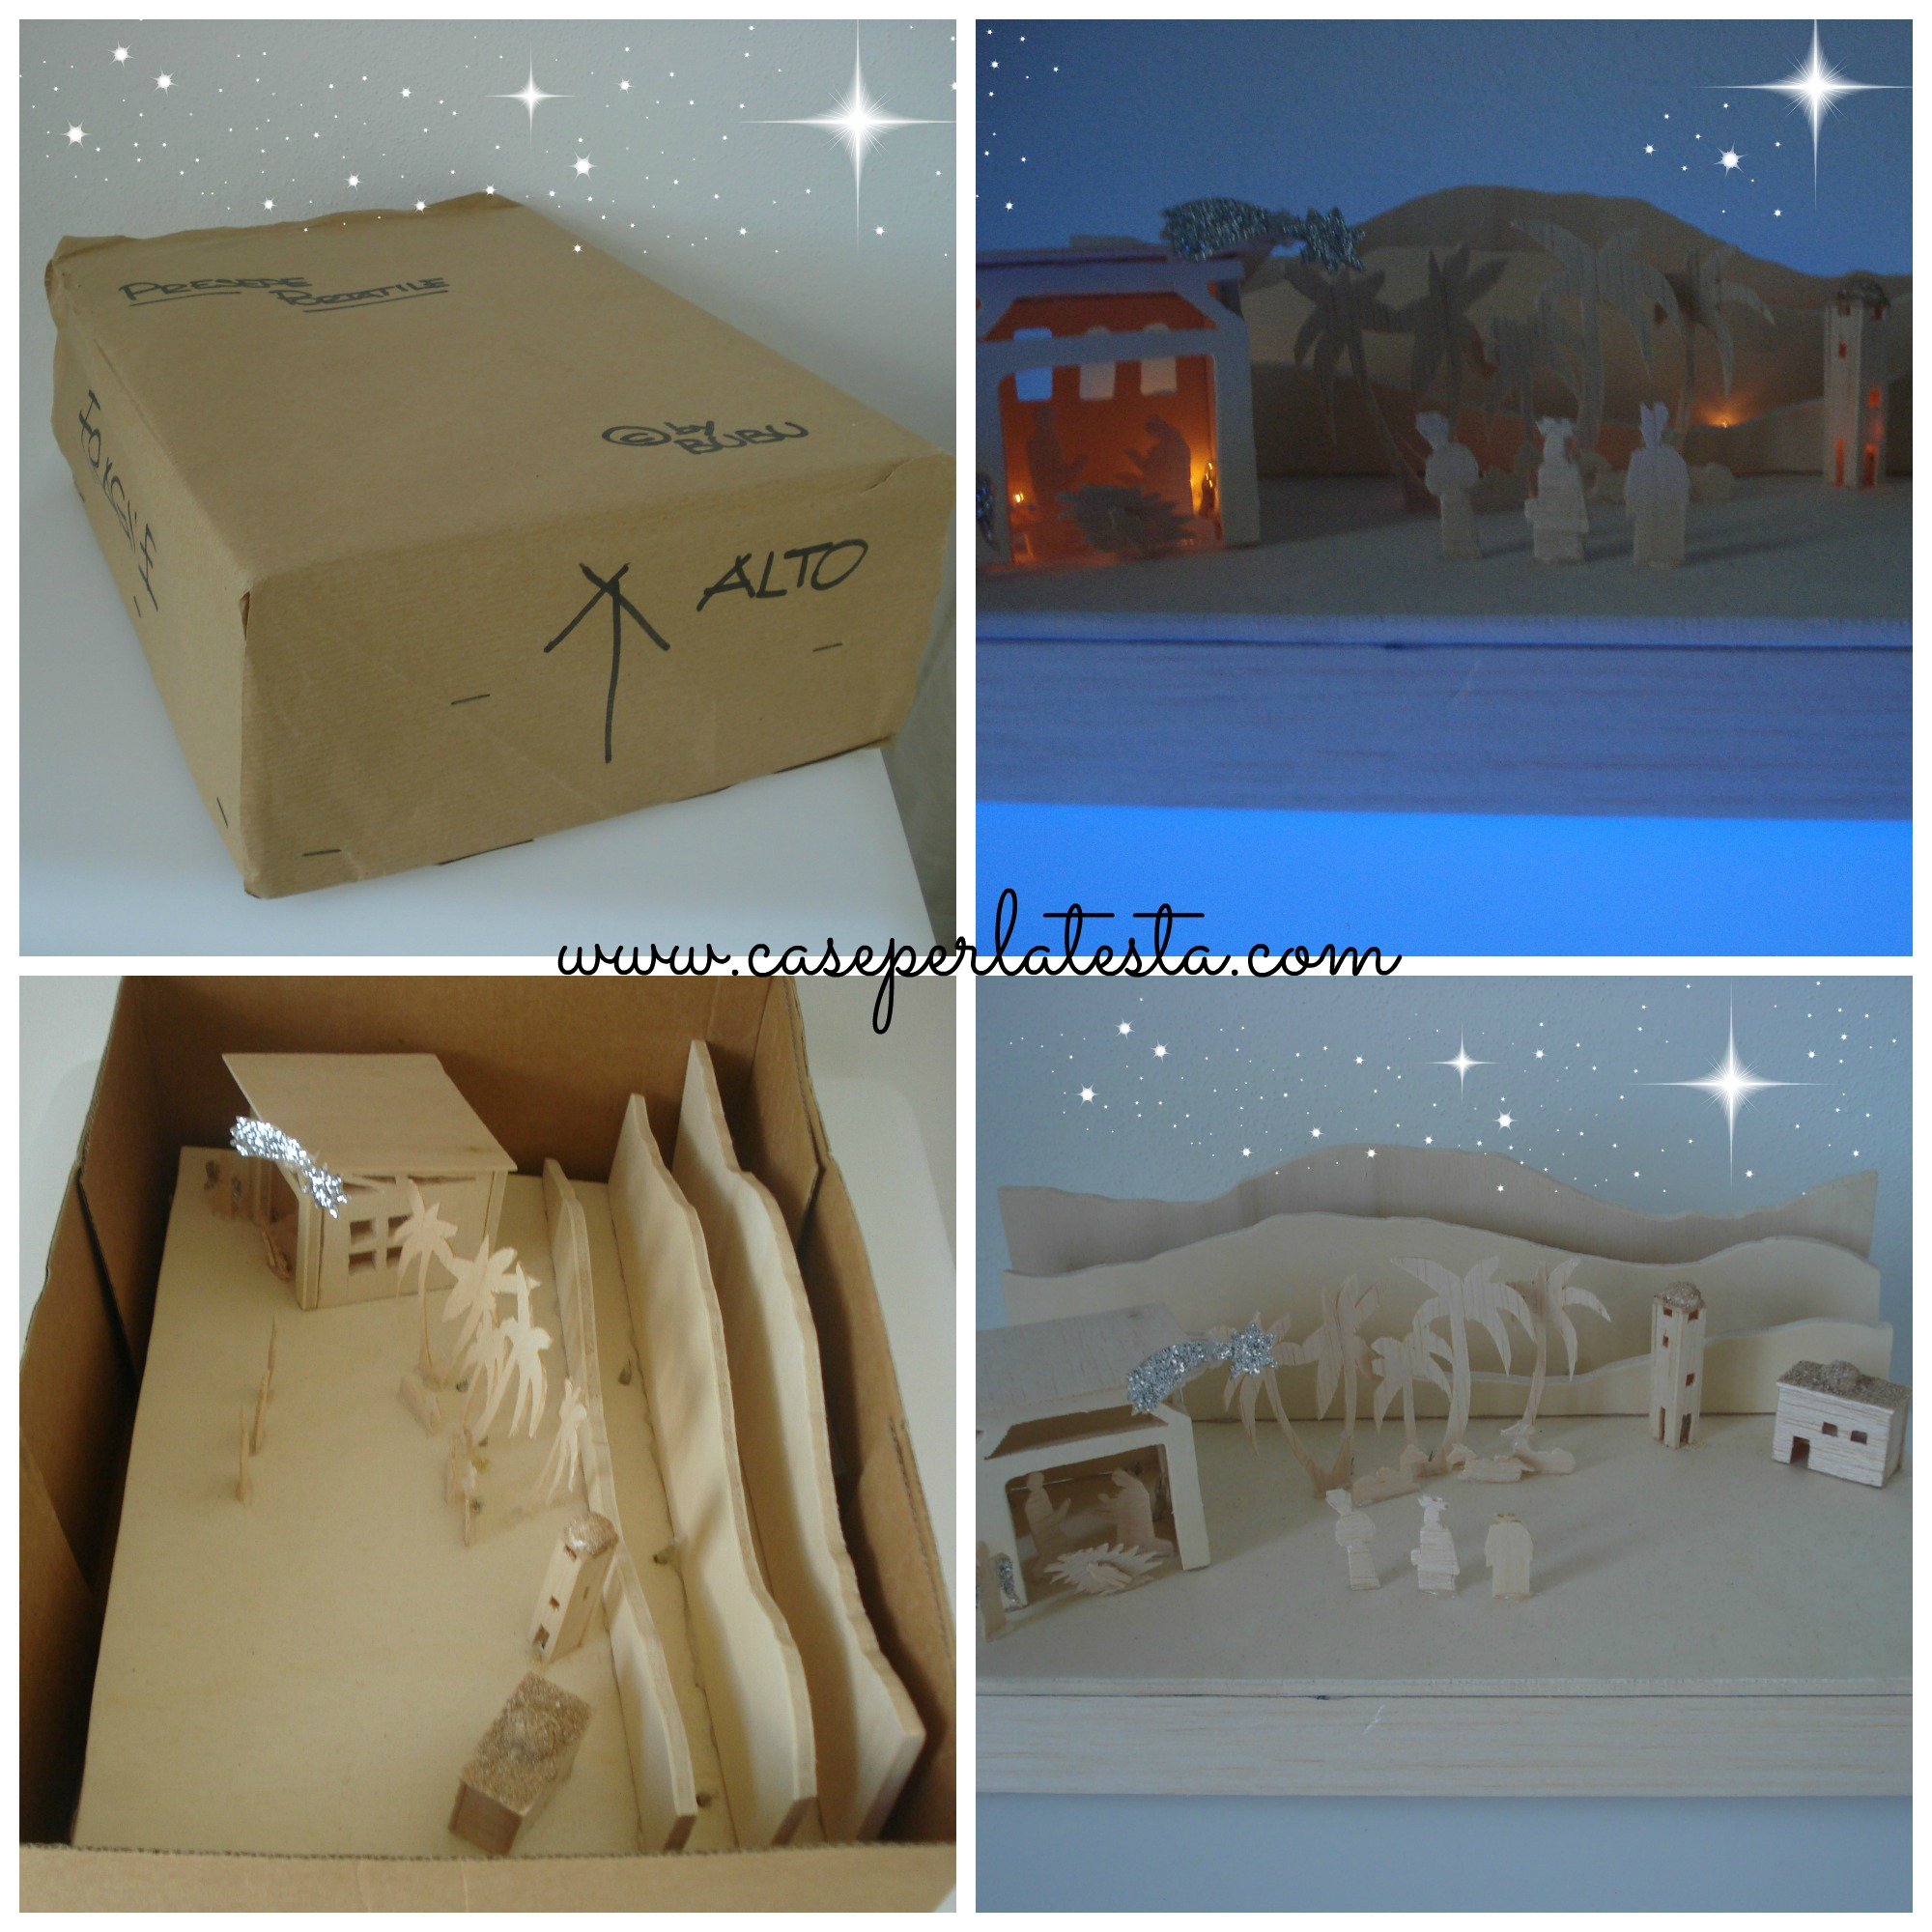 Presepe in scatola * Crib in a box